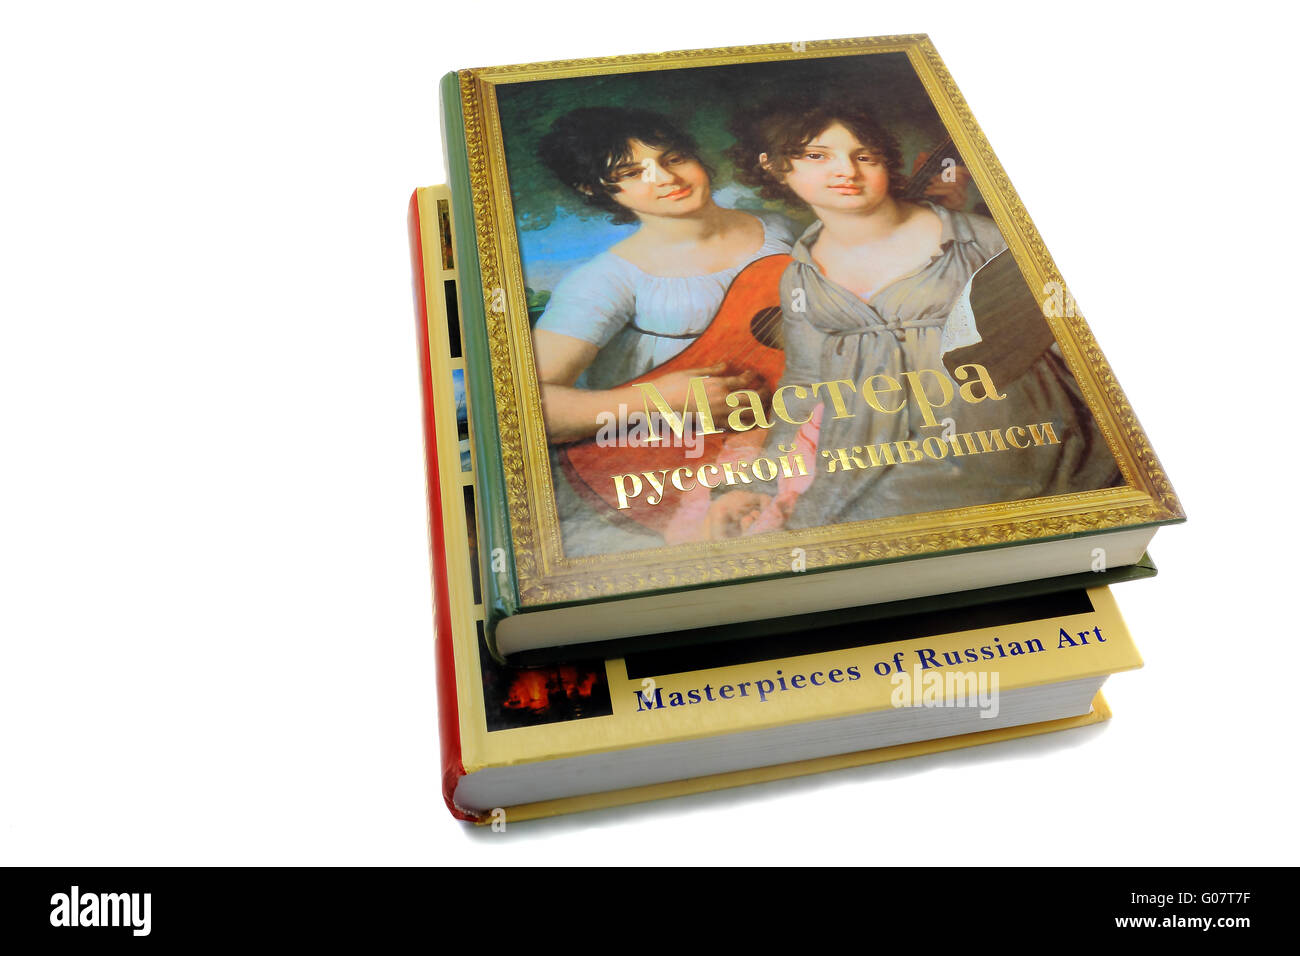 Two books about painting on a white background - Stock Image